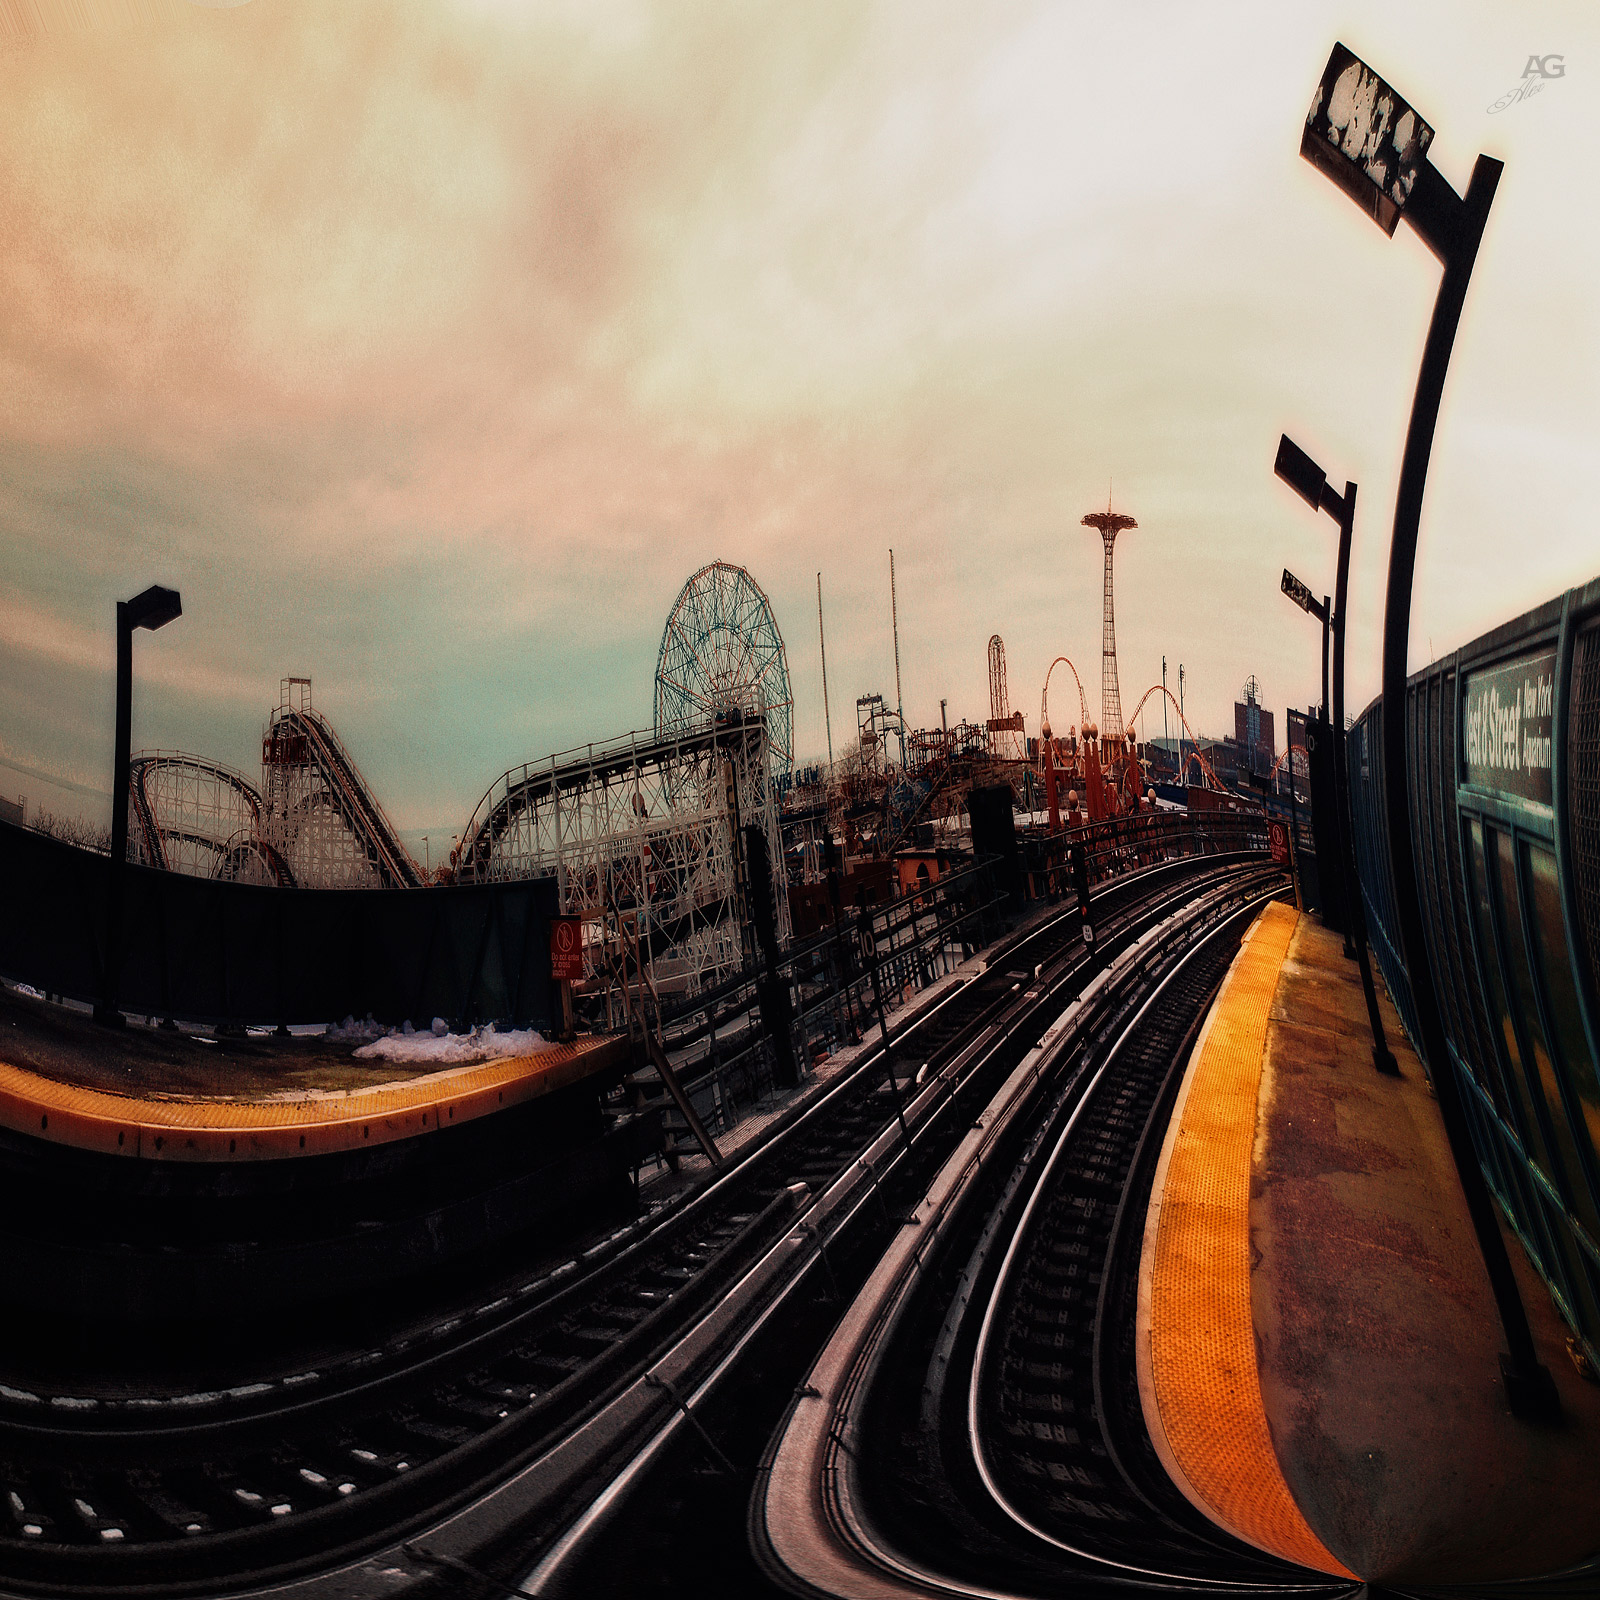 ElevatedTrainSubwayPlatformWithConeyIslandAttractionsOnABackgroundCloudy_unfolderWarp_1600